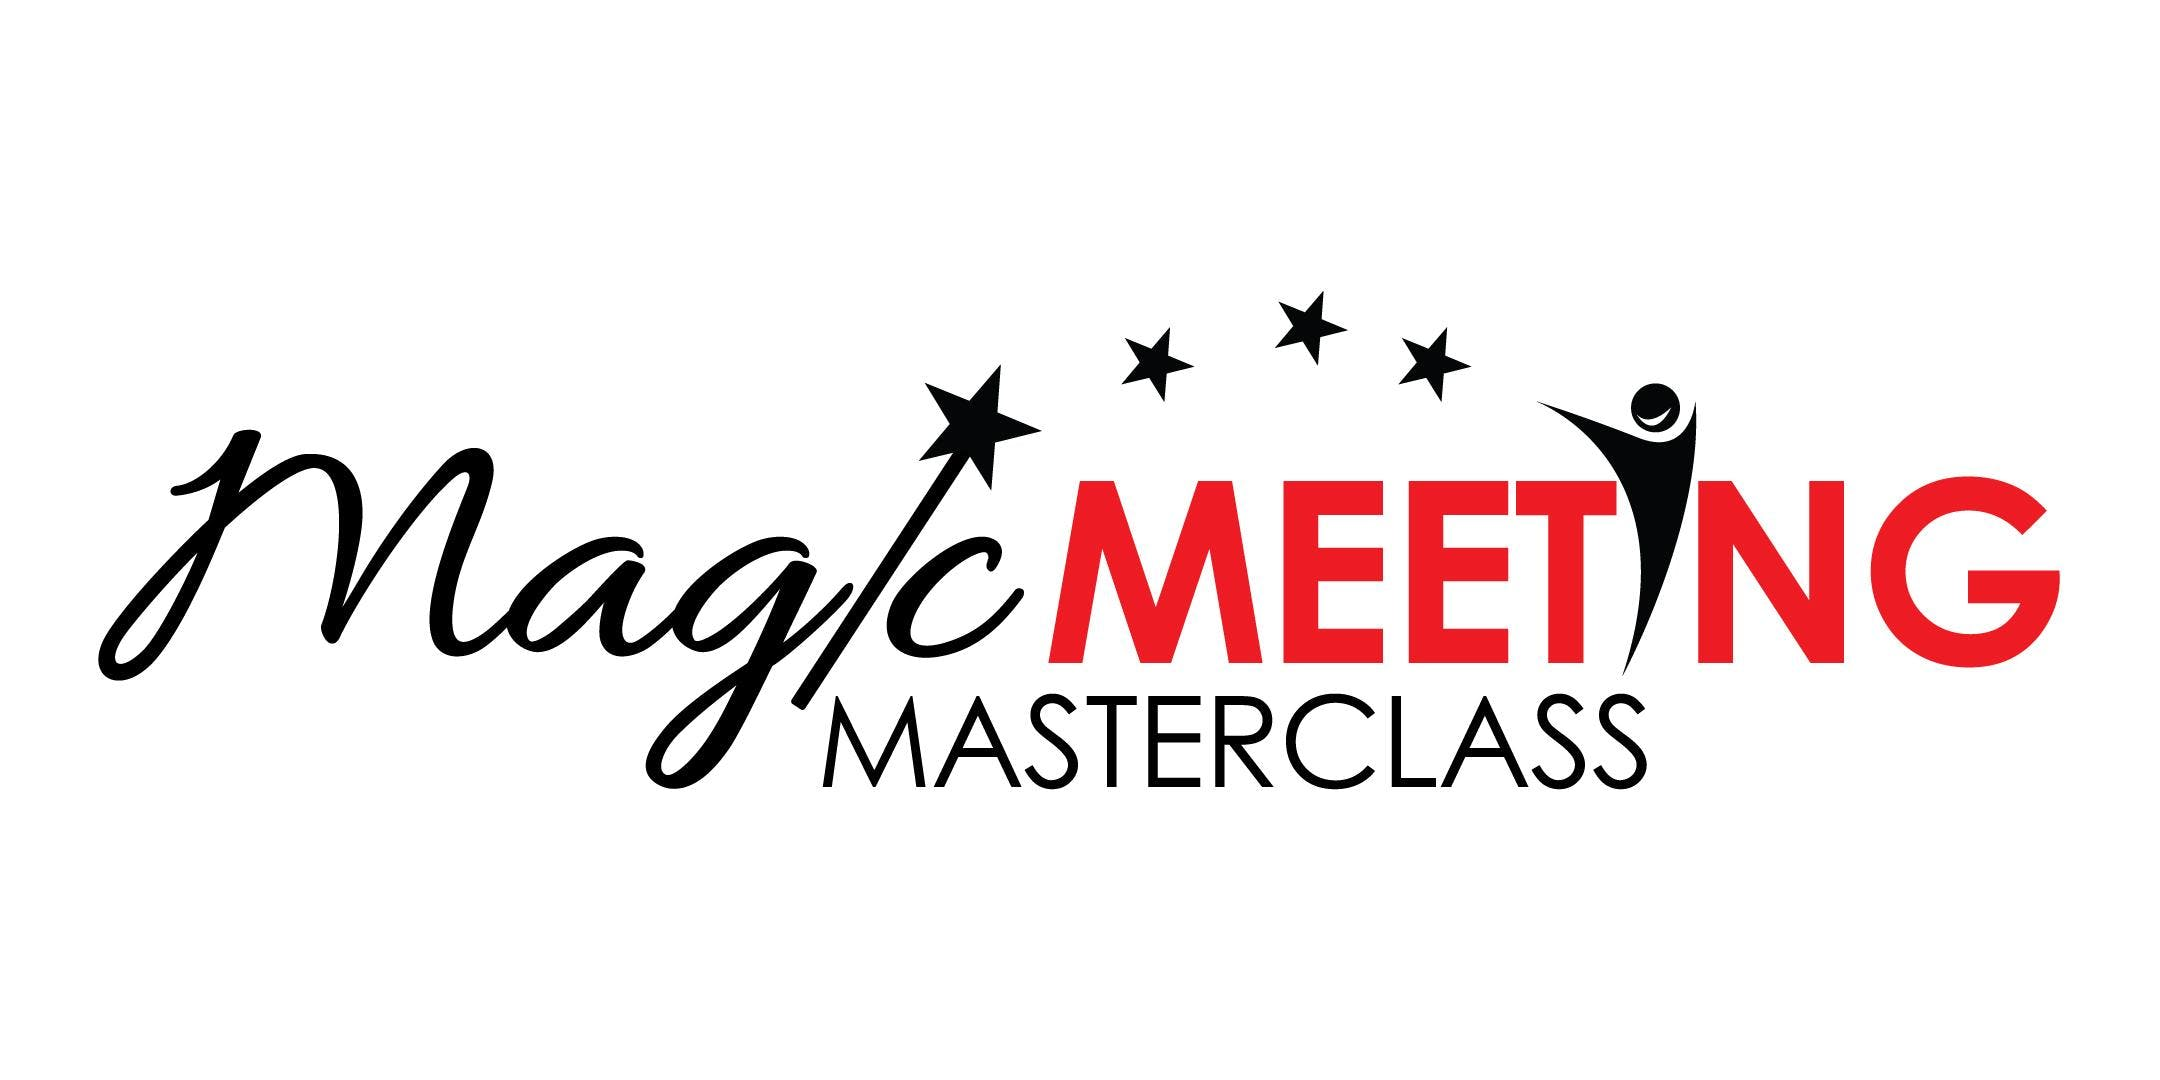 Magic Meeting Masterclass for meetings that d